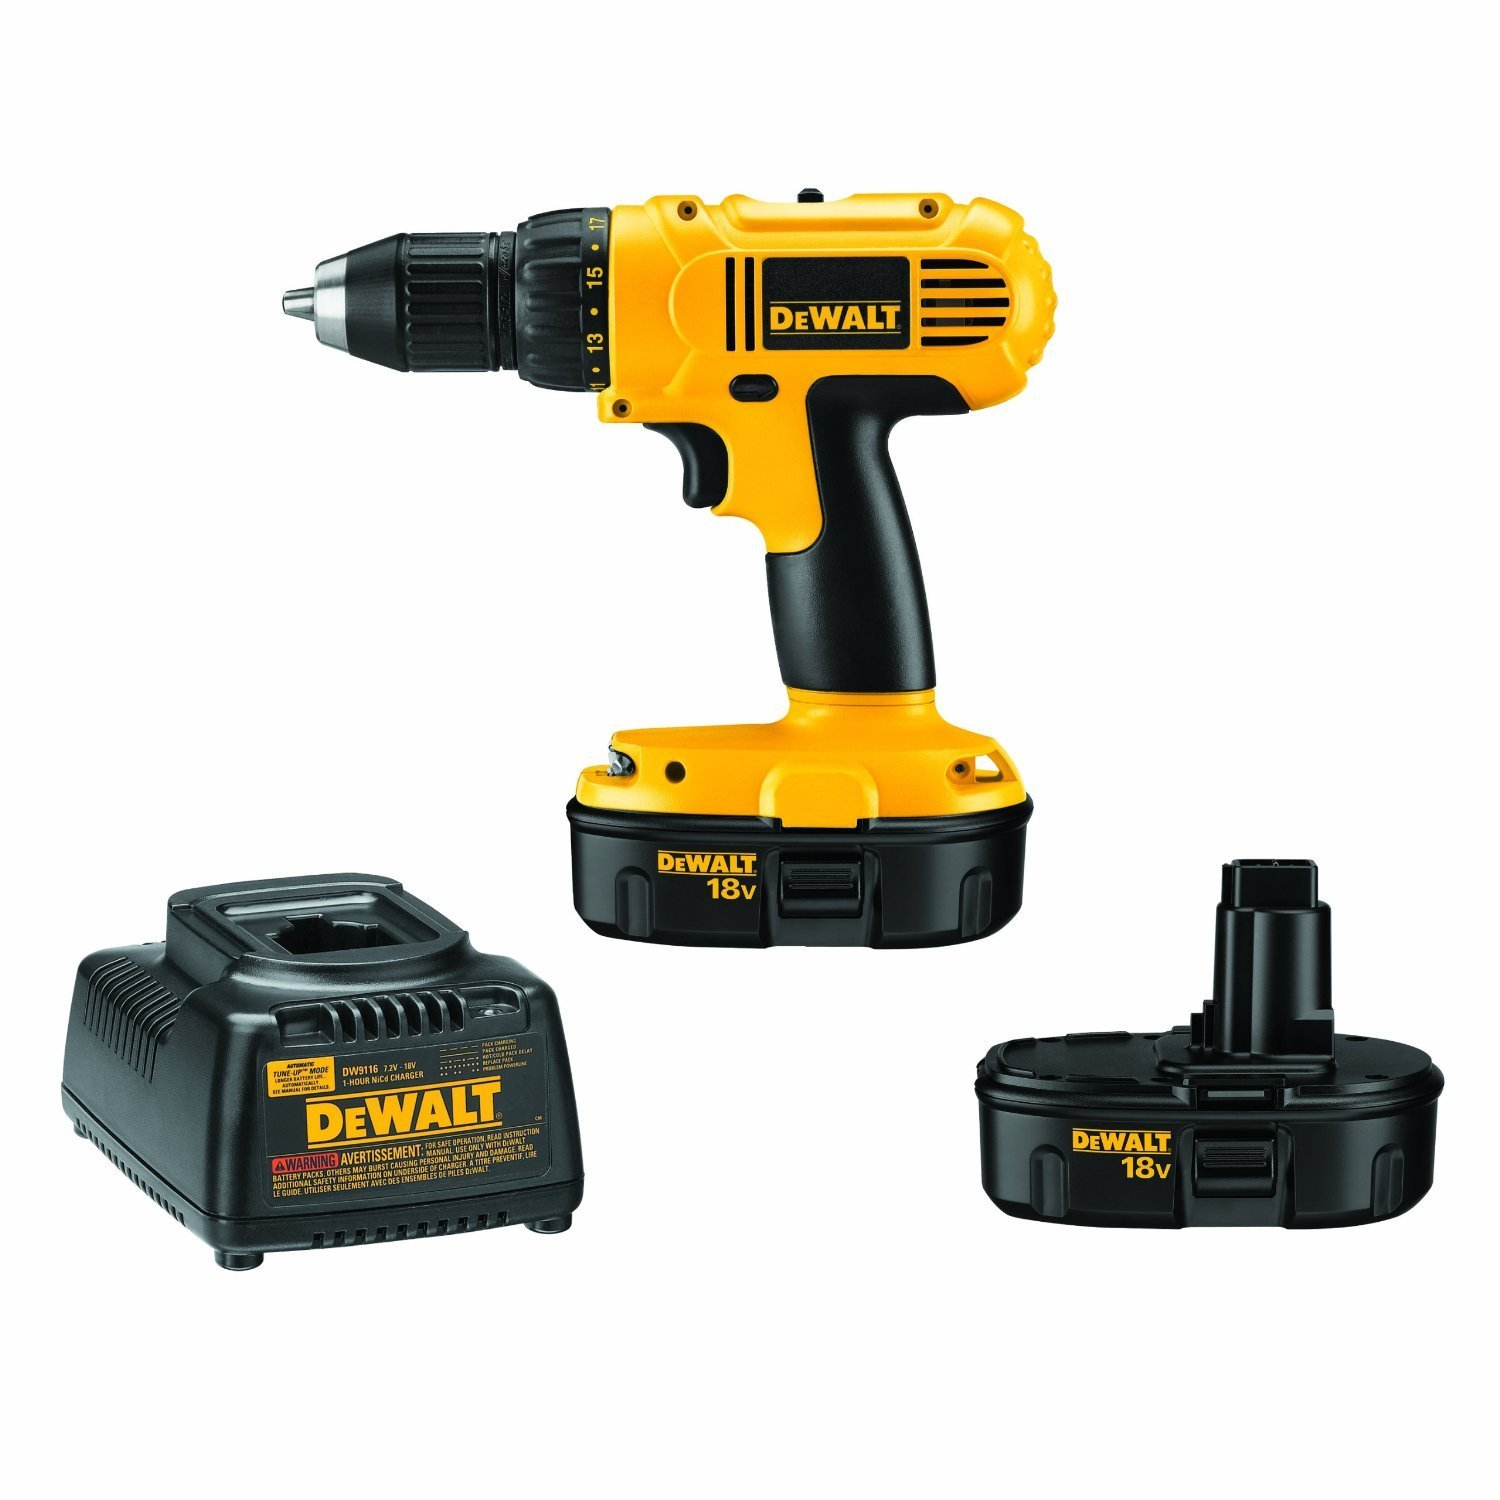 "Examen du kit perceuse / tournevis 18 volts DEWALT DC970K-2 ""width ="" 1500 ""height ="" 1500 ""srcset ="" https://i1.wp.com/toolandgo.com/wp-content/uploads/2014/01/ DEWALT-DC970K-2-18-Volt-Drill-Driver-Kit-Review.jpg? W = 1500 & ssl = 1 1500w, https://i1.wp.com/toolandgo.com/wp-content/uploads/2014/01 /DEWALT-DC970K-2-18-Volt-Drill-Driver-Kit-Review.jpg?resize=150%2C150&ssl=1 150w, https://i1.wp.com/toolandgo.com/wp-content/uploads/ 2014/01 / DEWALT-DC970K-2-18-Volt-Driver-Kit-Review.jpg? Resize = 300% 2C300 & ssl = 1 300w, https://i1.wp.com/toolandgo.com/wp-content /uploads/2014/01/DEWALT-DC970K-2-18-Volt-Drill-Driver-Kit-Review.jpg?resize=768%2C768&ssl=1 768w, https://i1.wp.com/toolandgo.com/ wp-content / uploads / 2014/01 / DEWALT-DC970K-2-18-Volt-Driver-Kit-Review.jpg? resize = 1024% 2C1024 & ssl = 1 1024w, https://i1.wp.com/toolandgo .com / wp-content / uploads / 2014/01 / DEWALT-DC970K-2-18-Volt-Driver-Kit-Review.jpg? resize = 65% 2C65 & ssl = 1 65w, https: //i1.wp. com / toolandgo.com / wp-content / uploads / 2014/01 / DEWALT-DC970K-2-18-Volt-Dr ill-Driver-Kit-Review.jpg? resize = 220% 2C220 & ssl = 1 220w ""tailles ="" (largeur maximale: 1000px) 100vw, 1000px ""données-recalc-dims ="" 1"